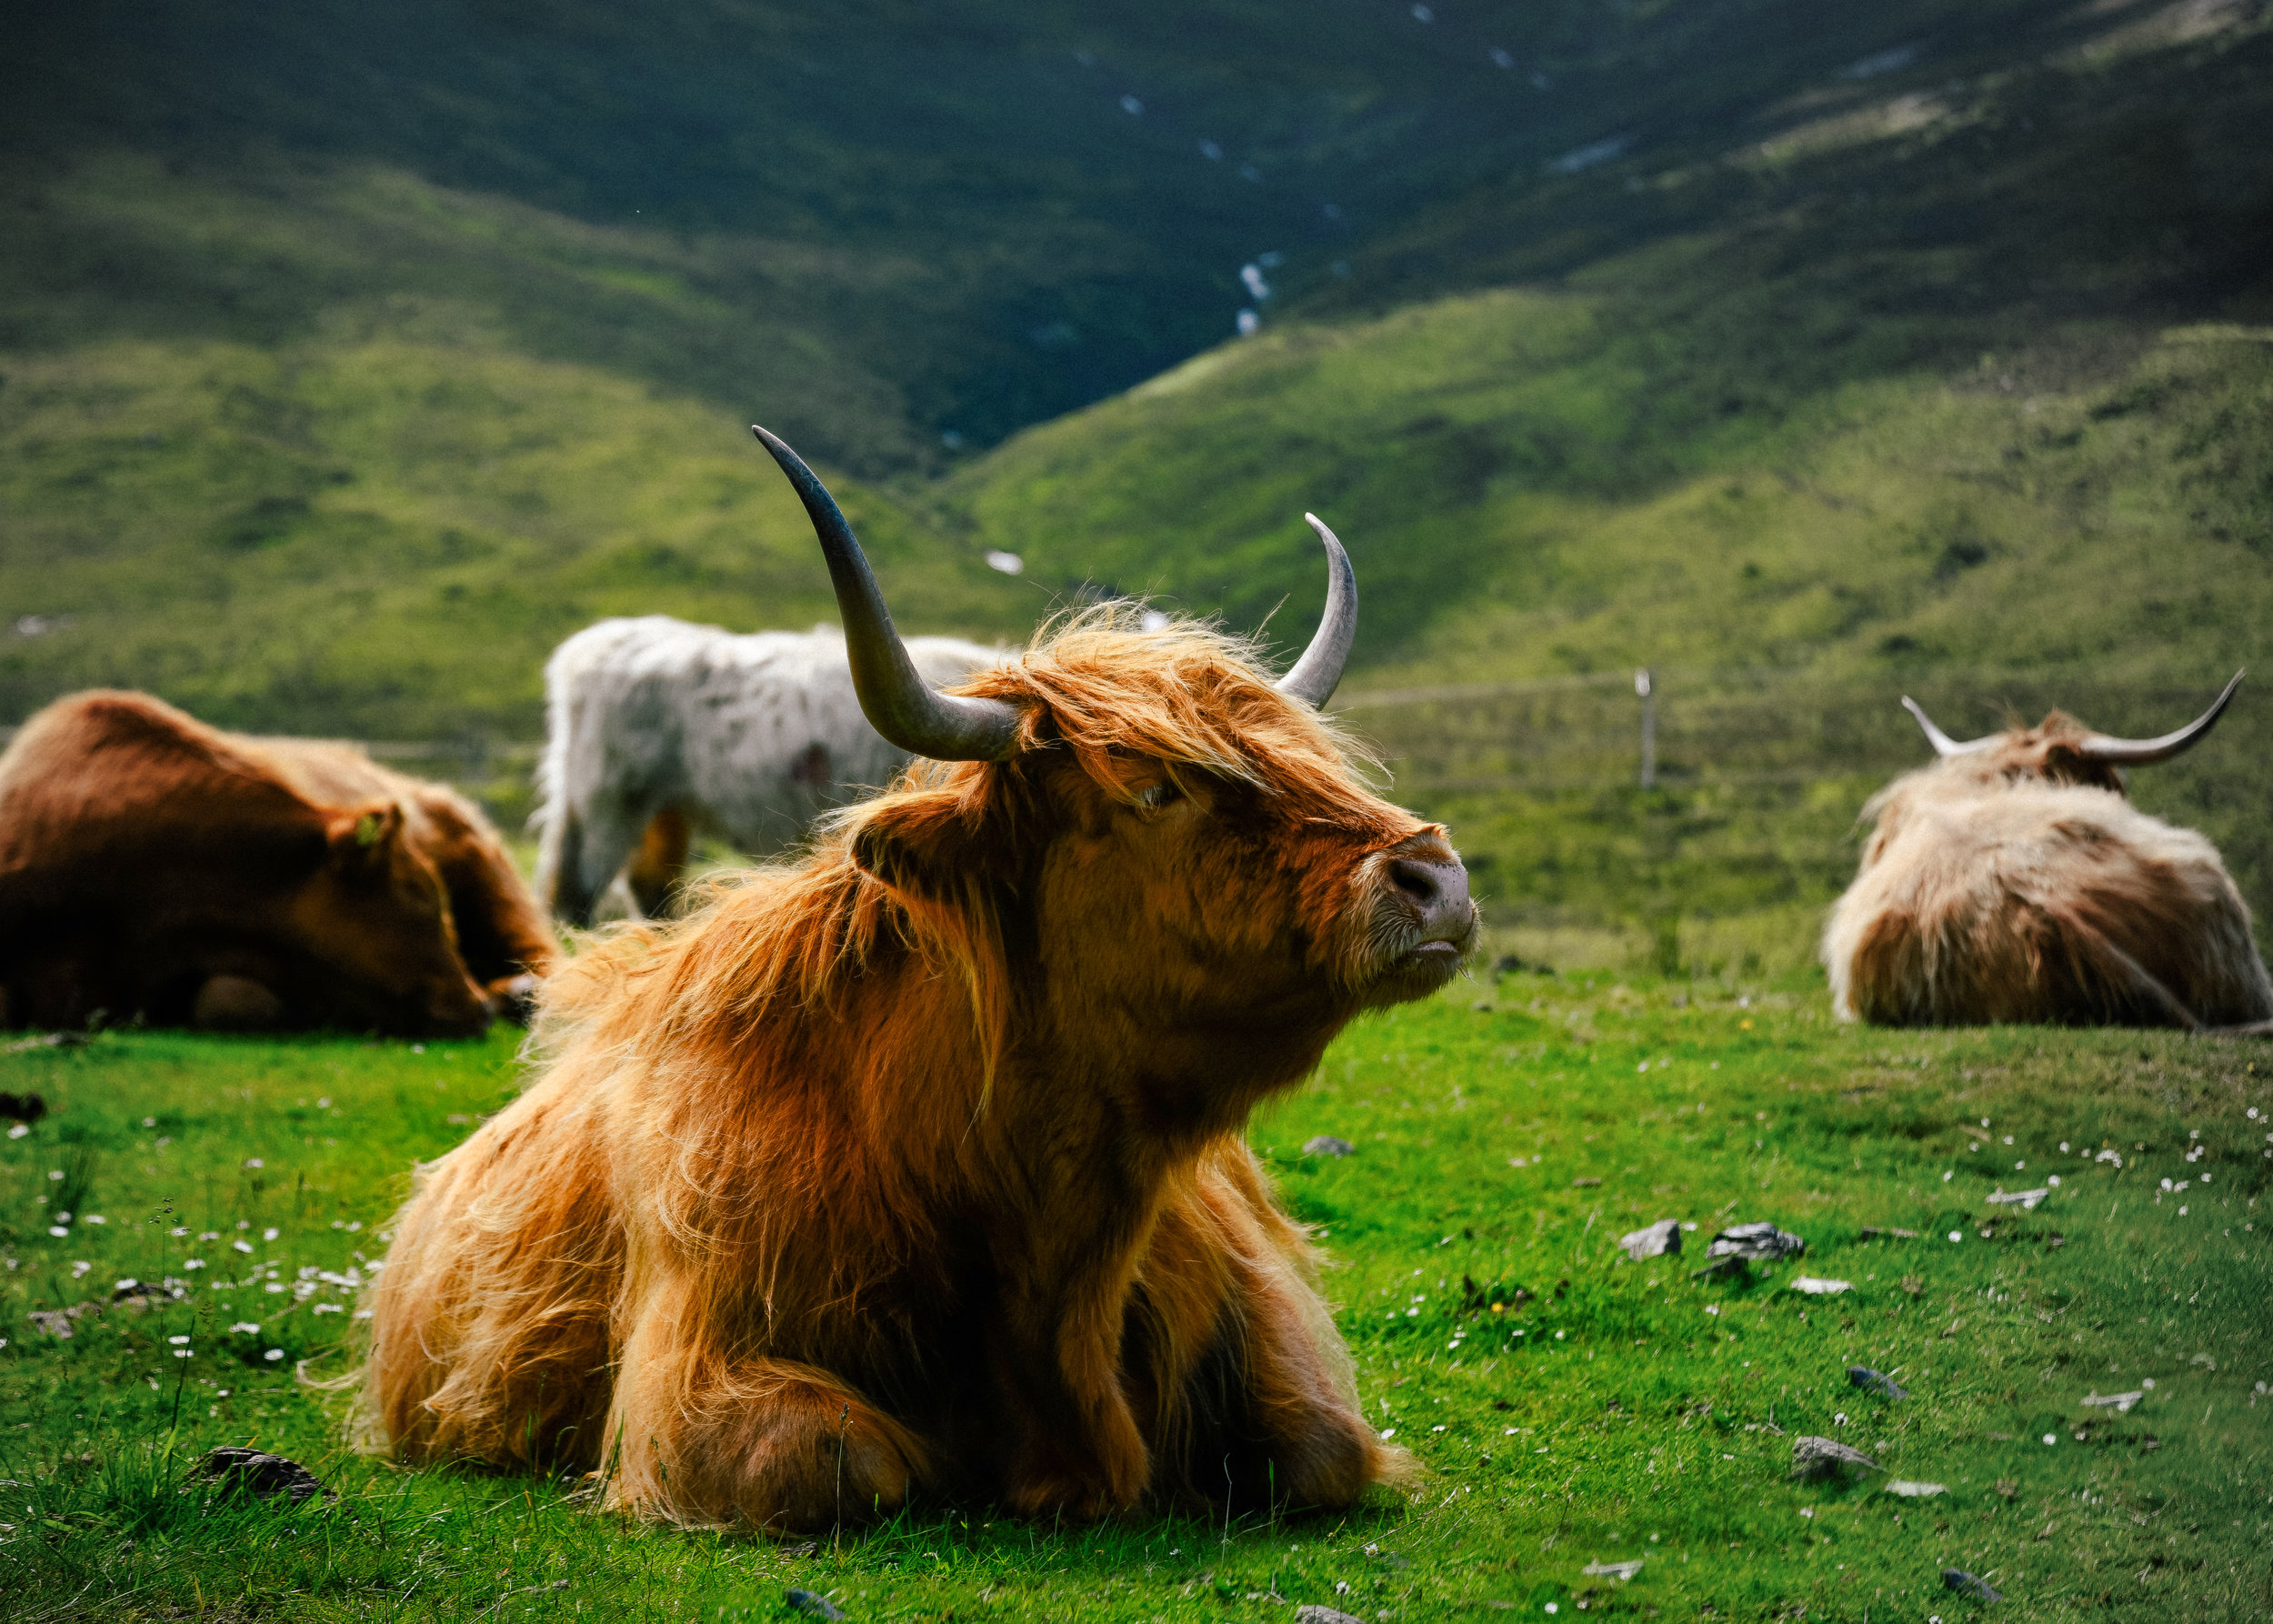 adorable highland cow! (or as the Scottish say, heilan coo)